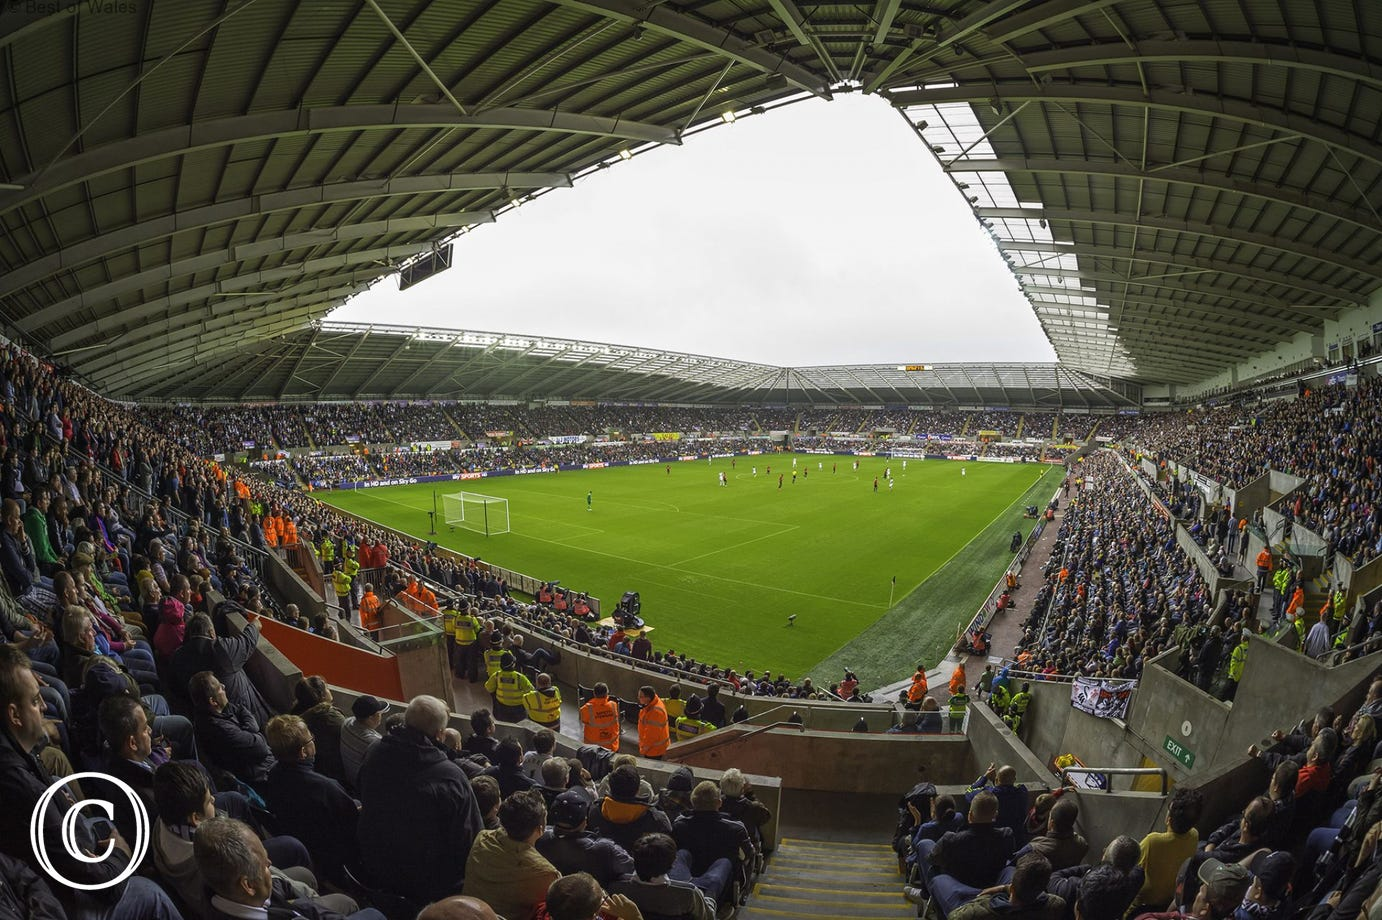 The Liberty Stadium in Swansea